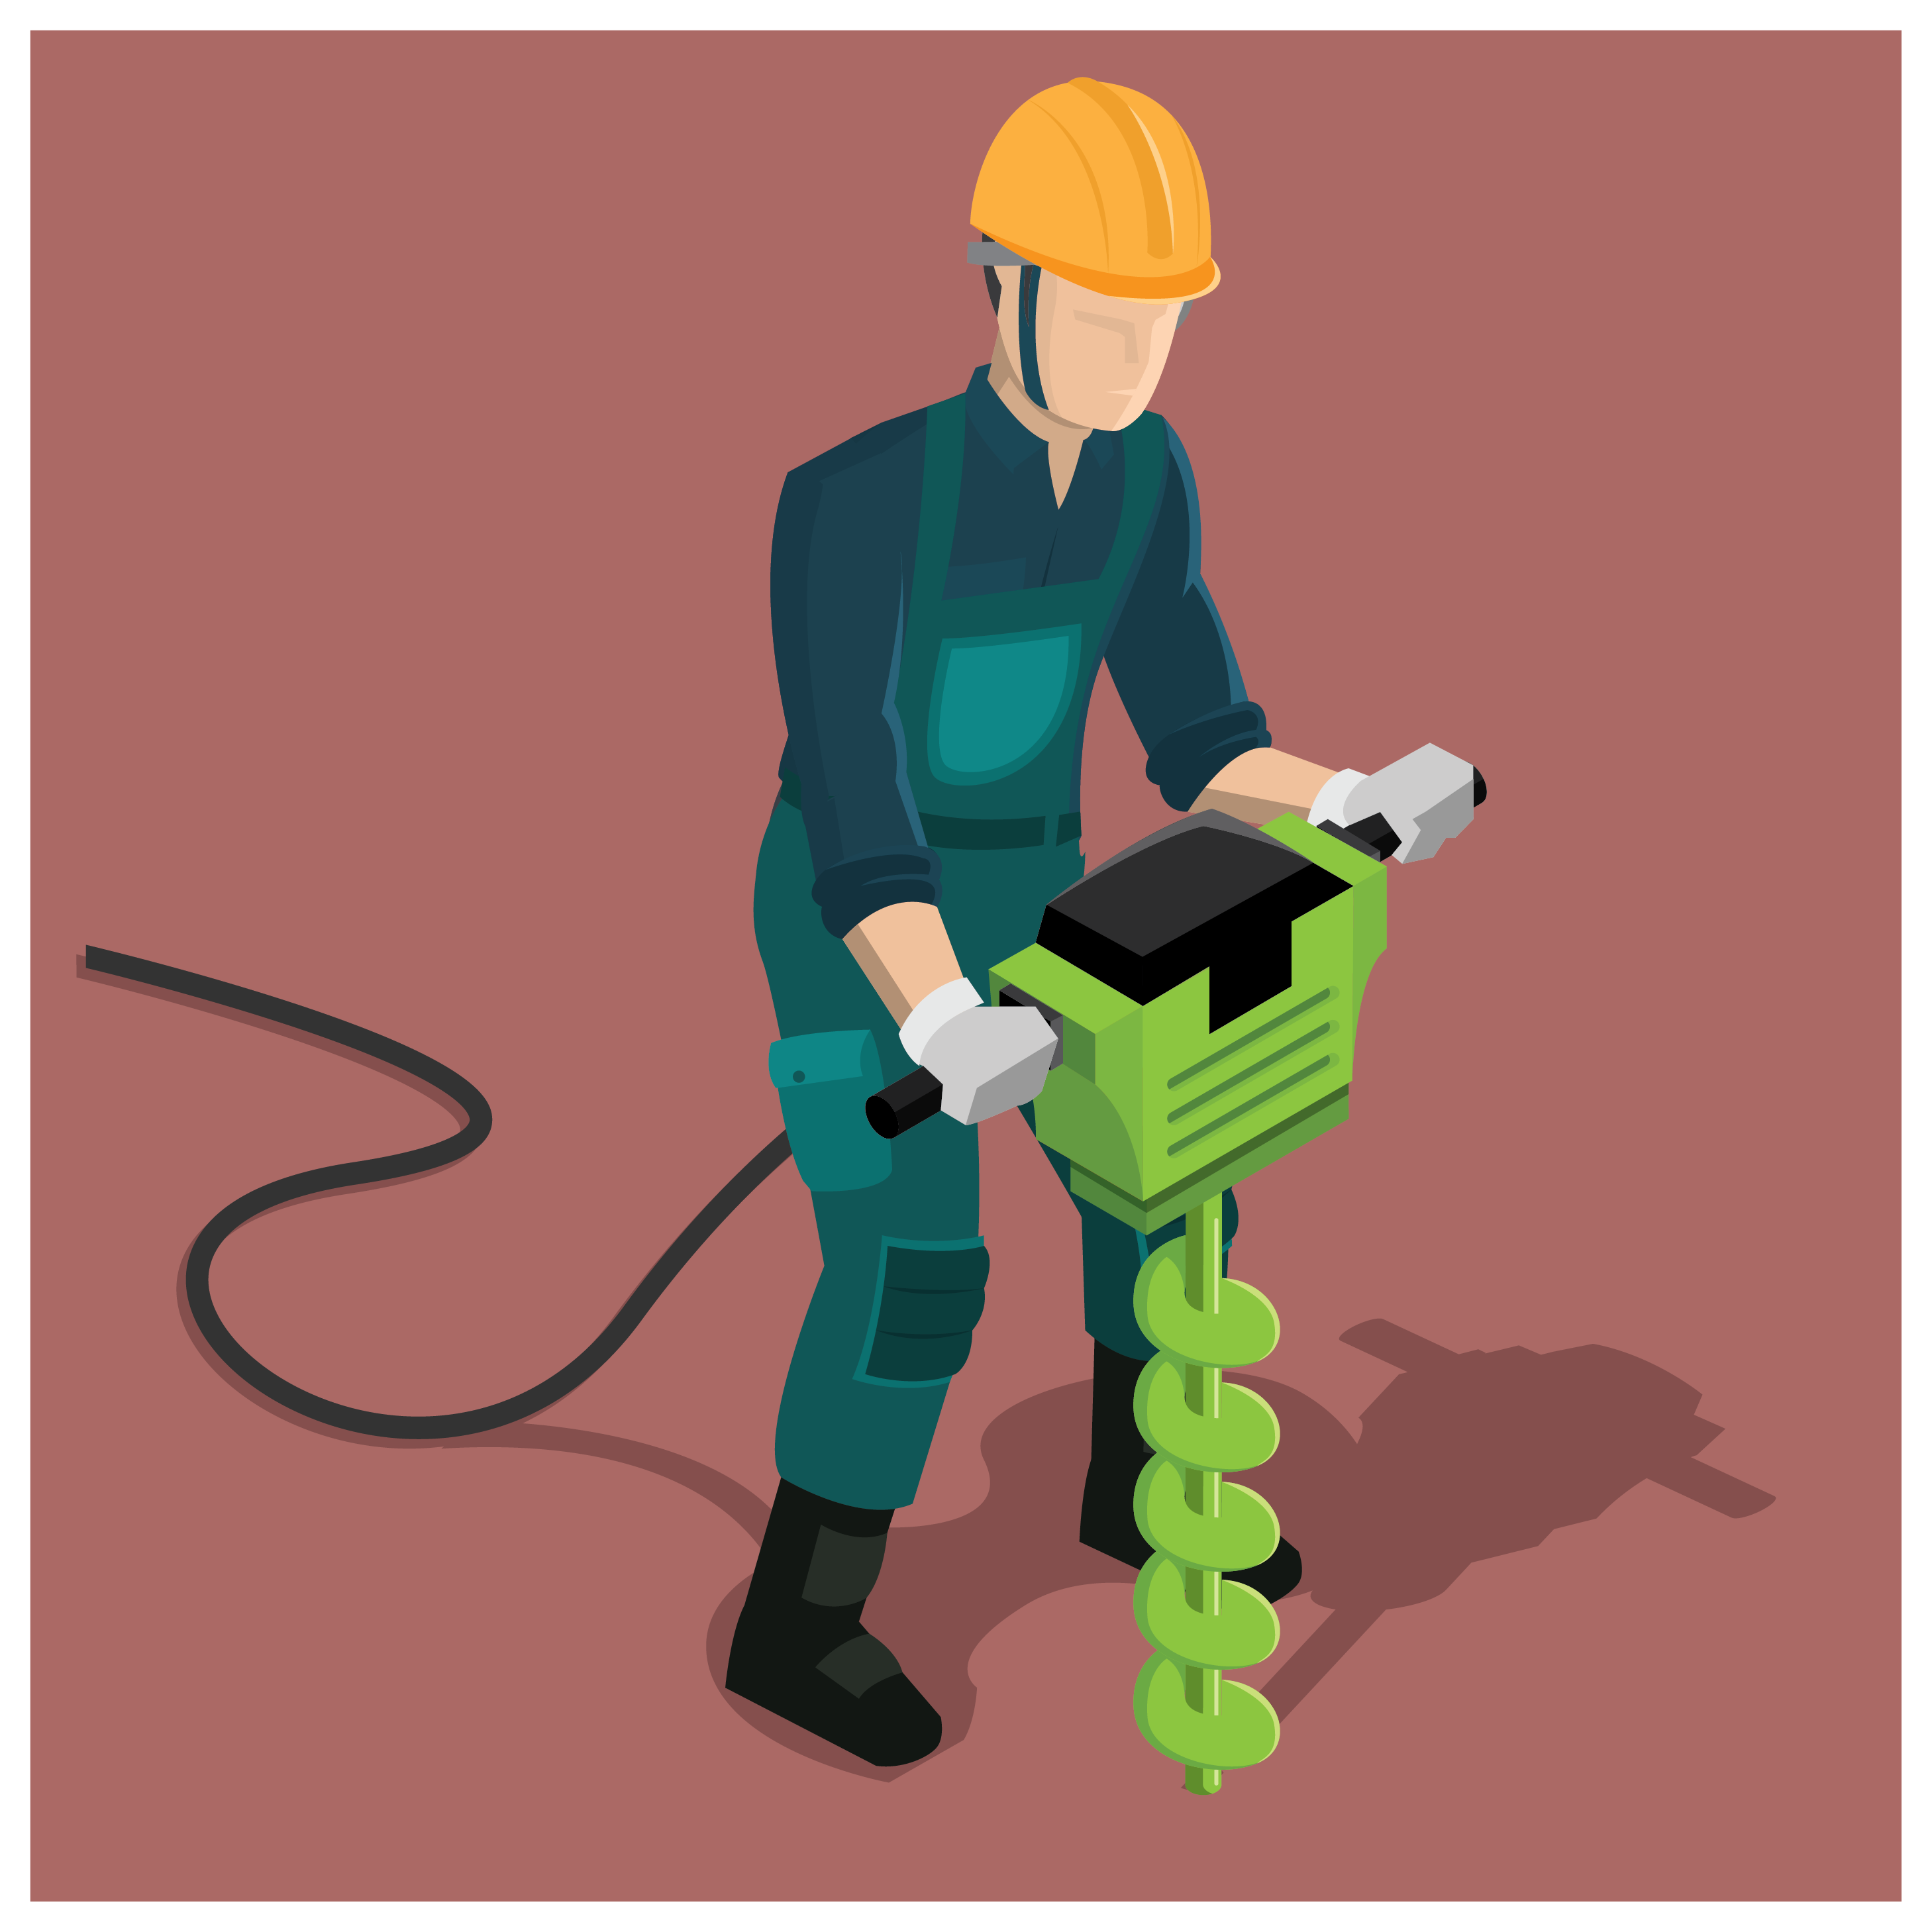 Drill clipart road worker. Construction man vector download